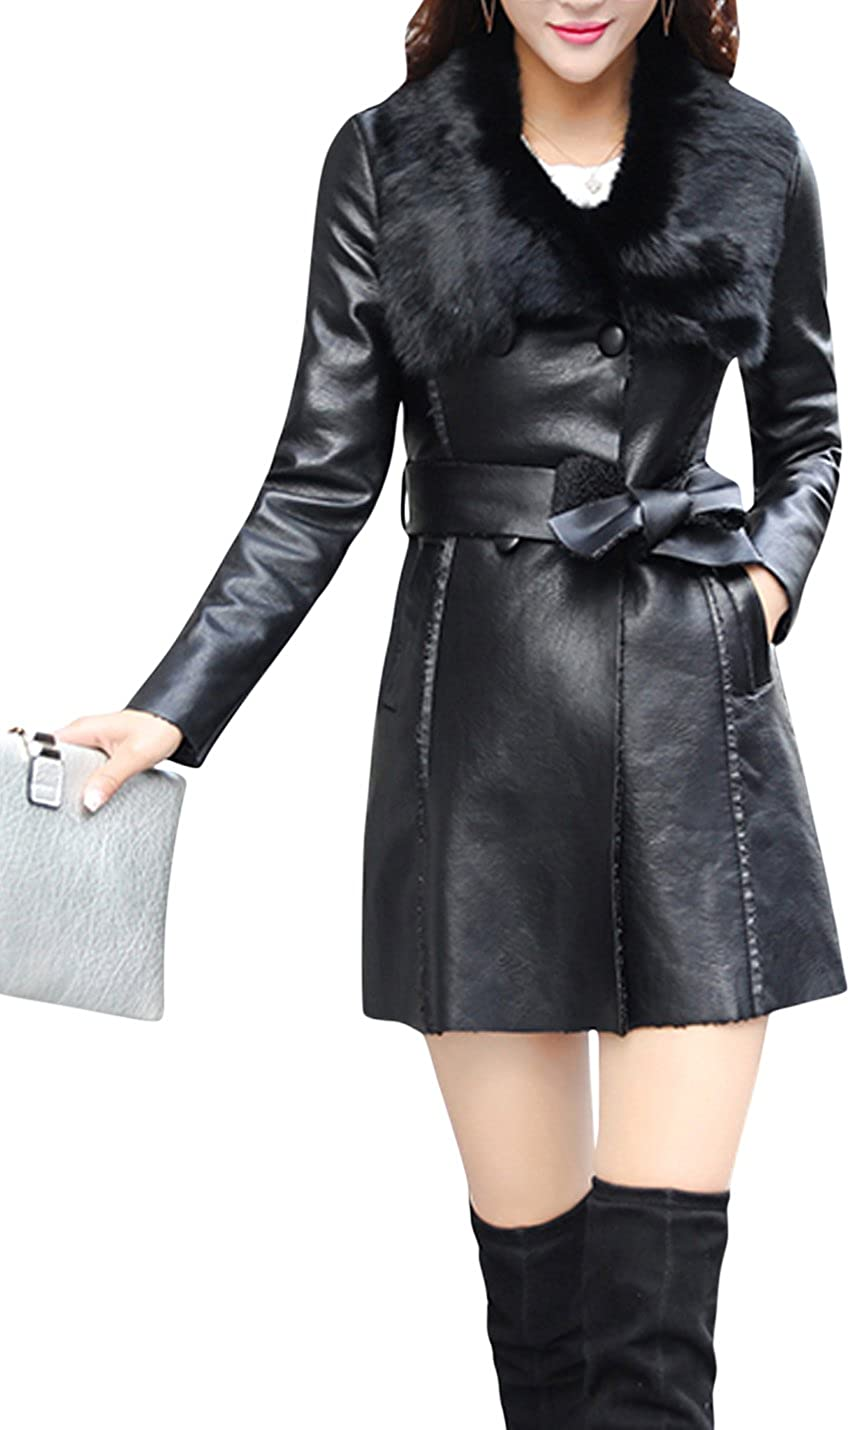 Tampa Mall National uniform free shipping Springrain Women's Slim Fur Collar Stitching Double Breasted Mid